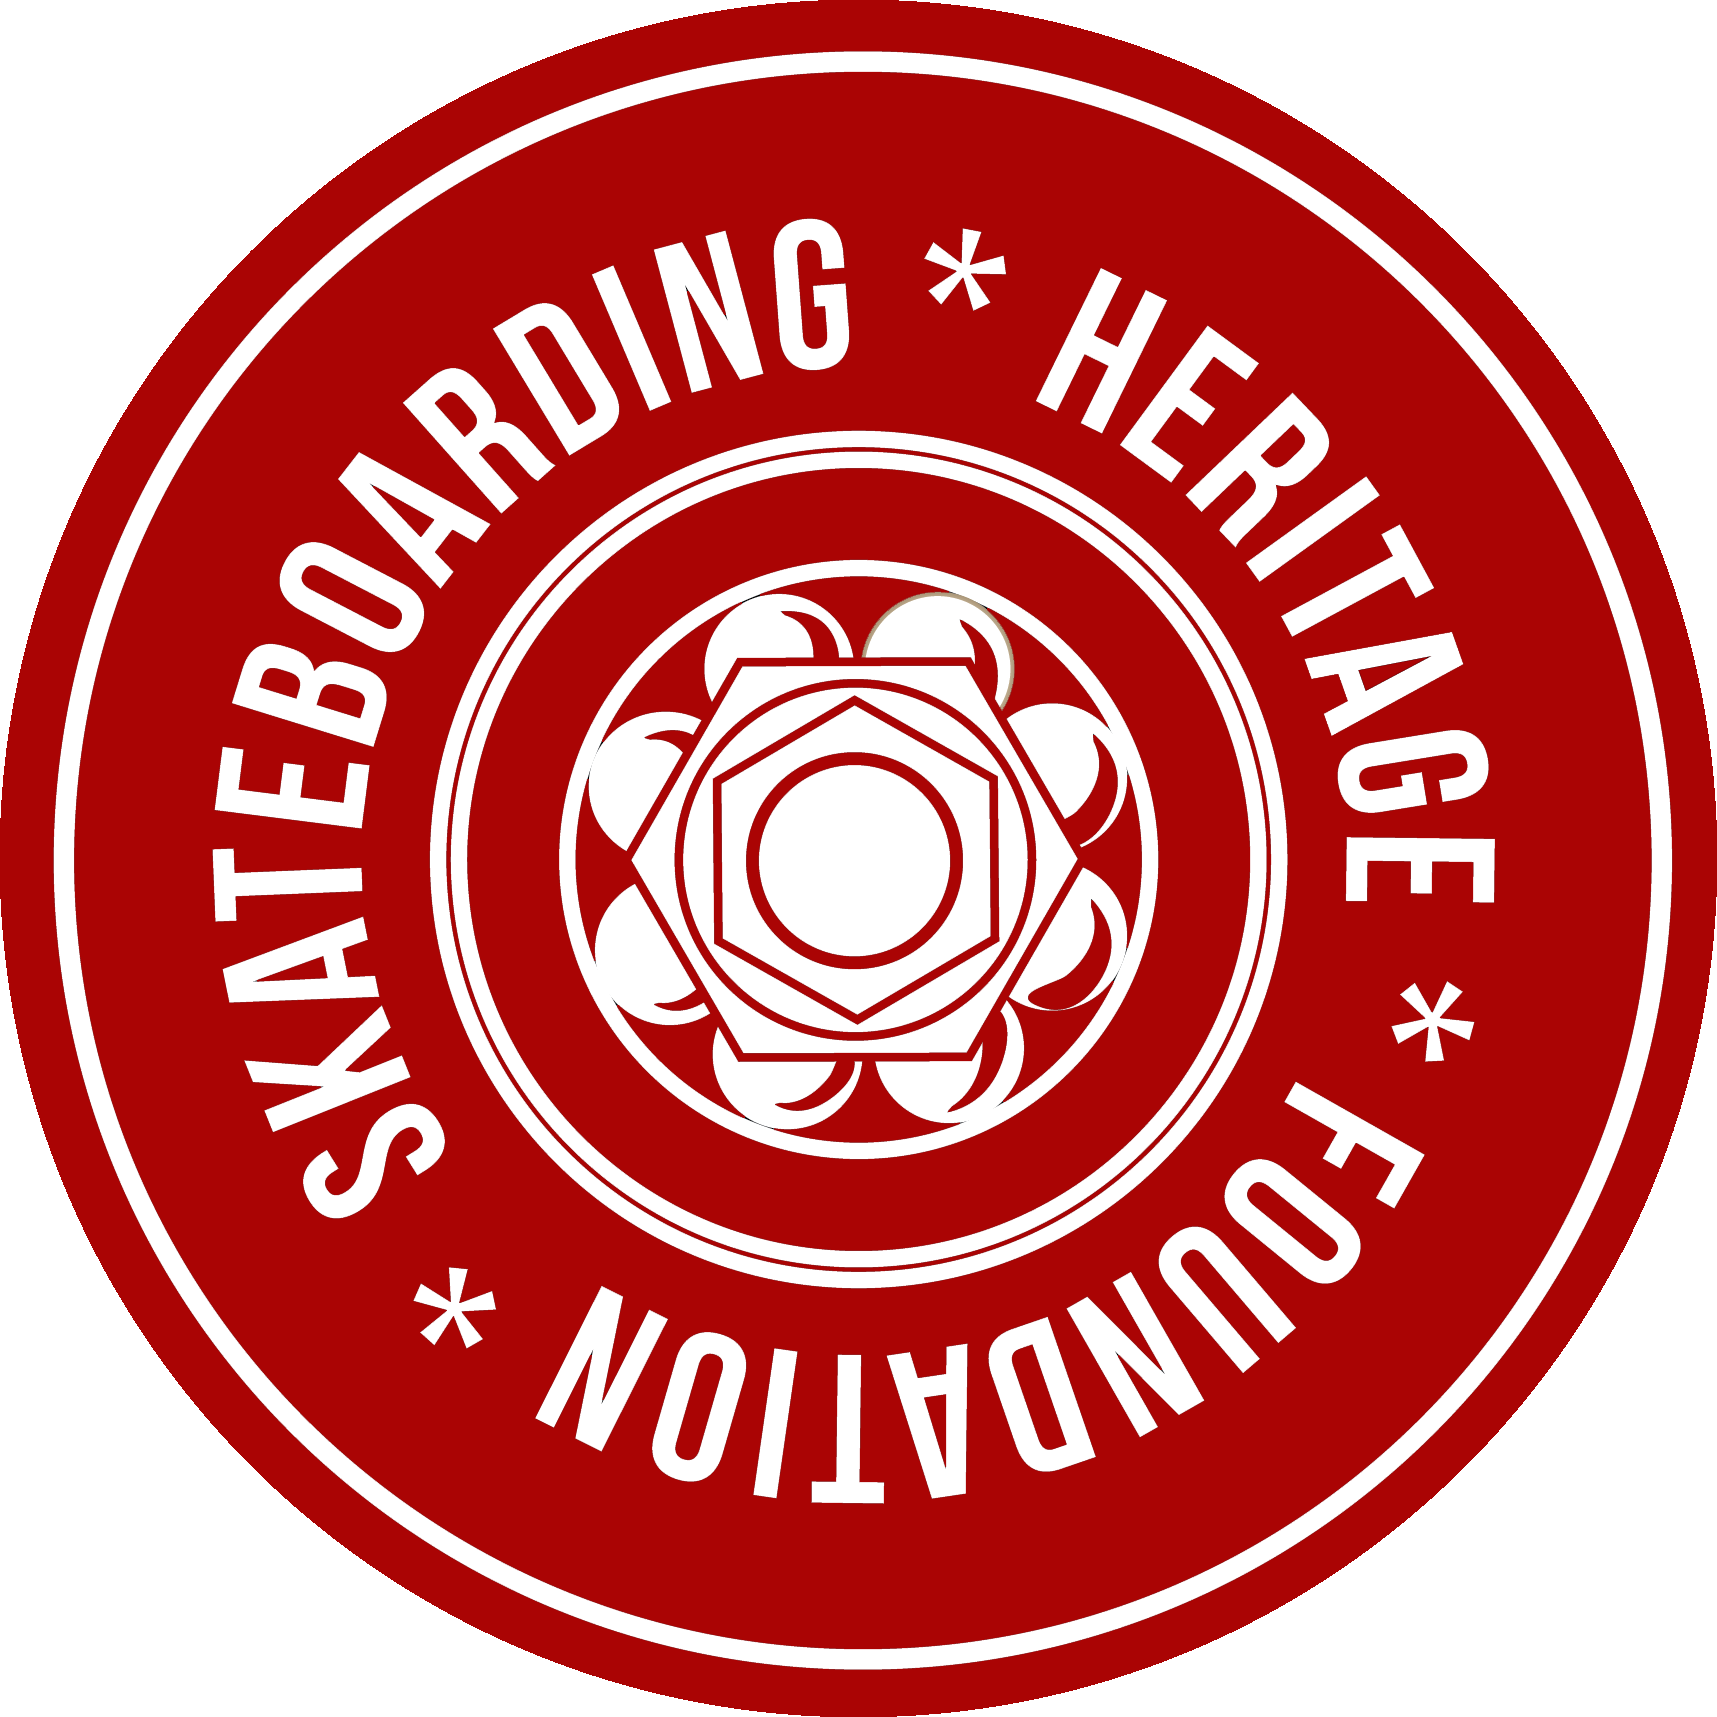 Skateboarding Heritage Foundation (Logo)